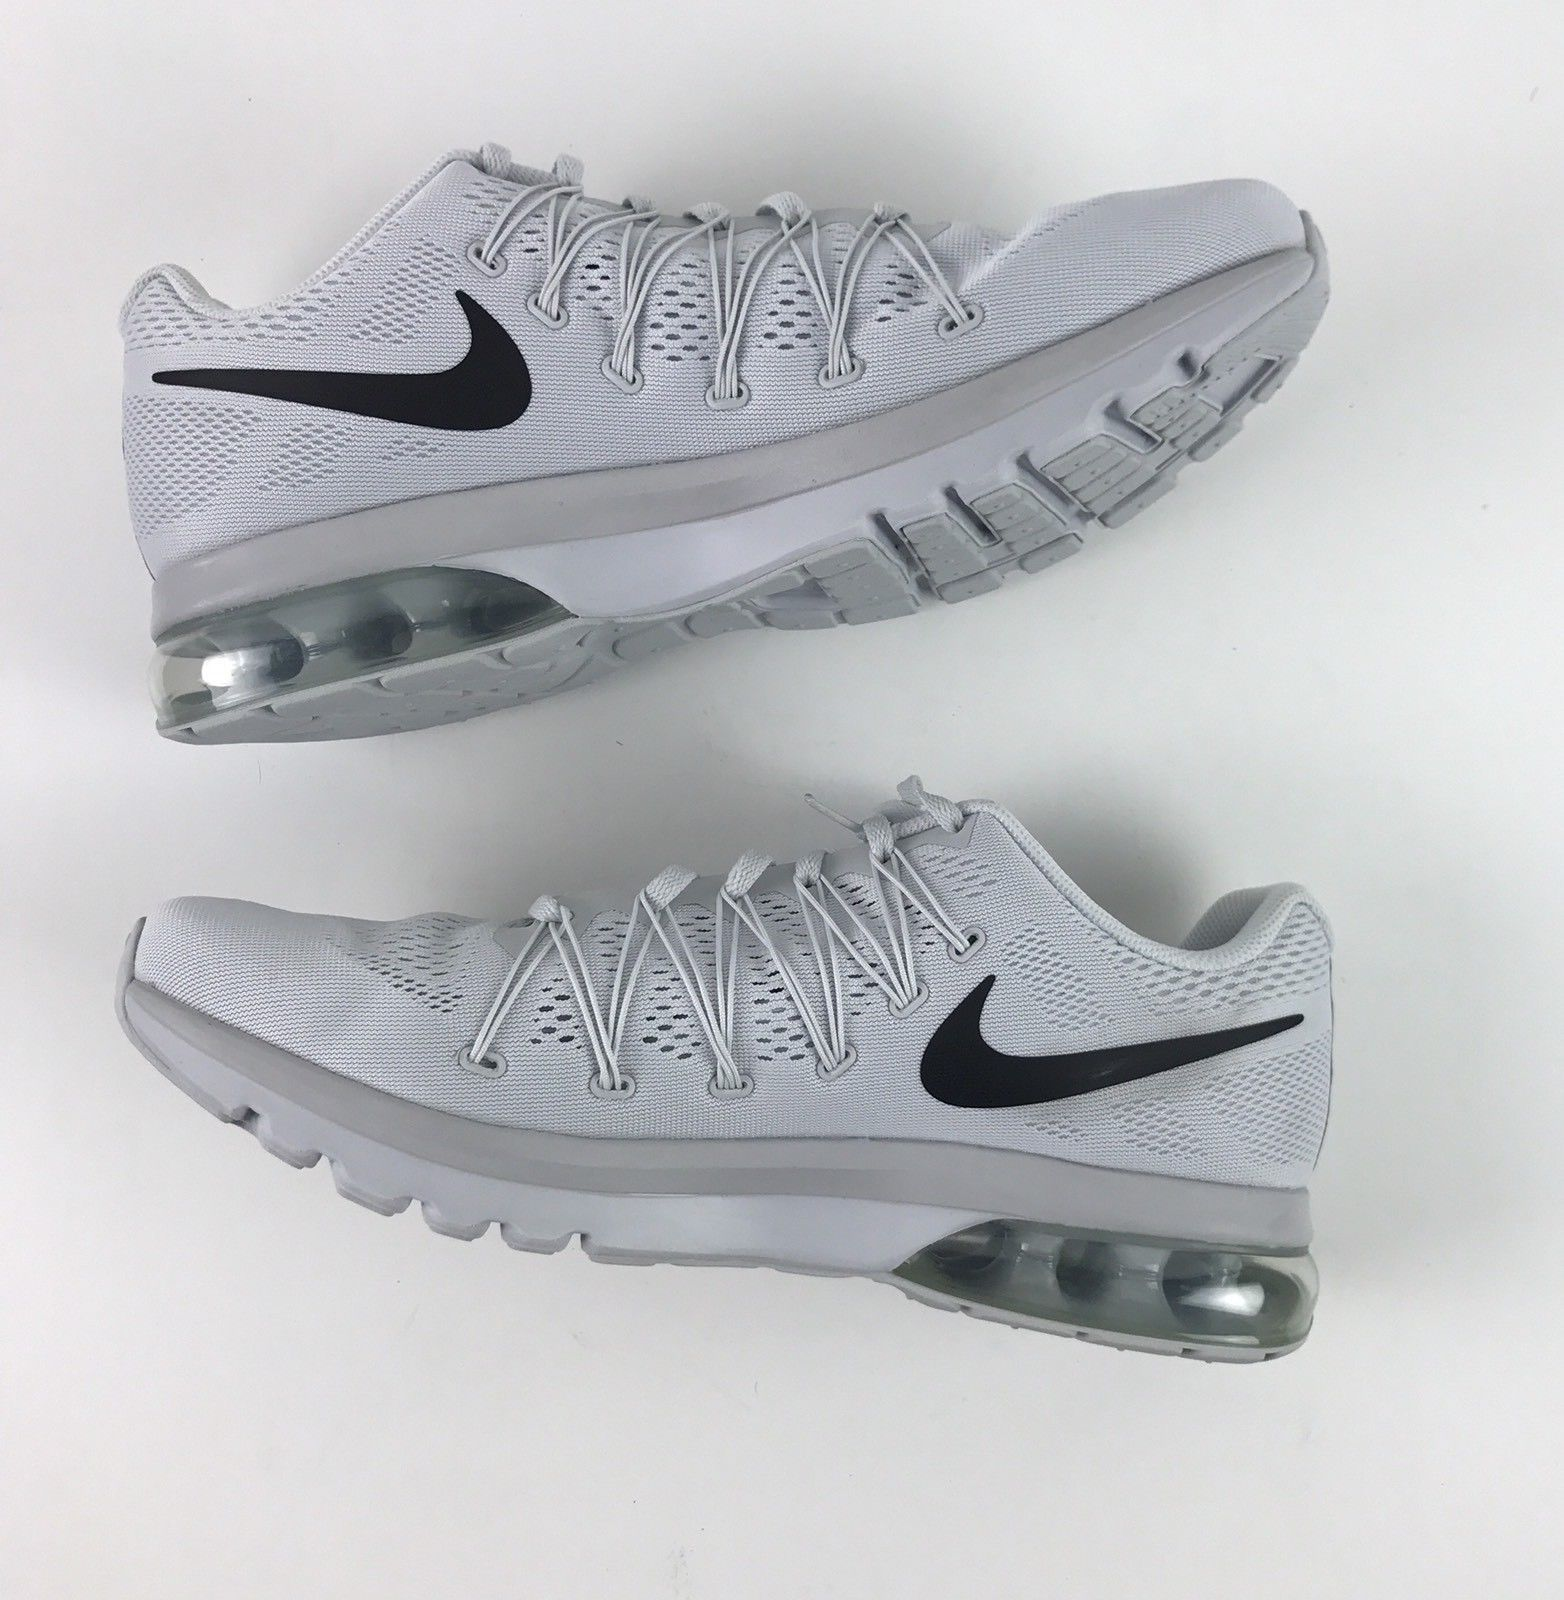 9a69da3227cee Nike Air Max Excellerate 5 Pure Platinum Black Mesh 852692-004 Men s Size  11.5 SIZE